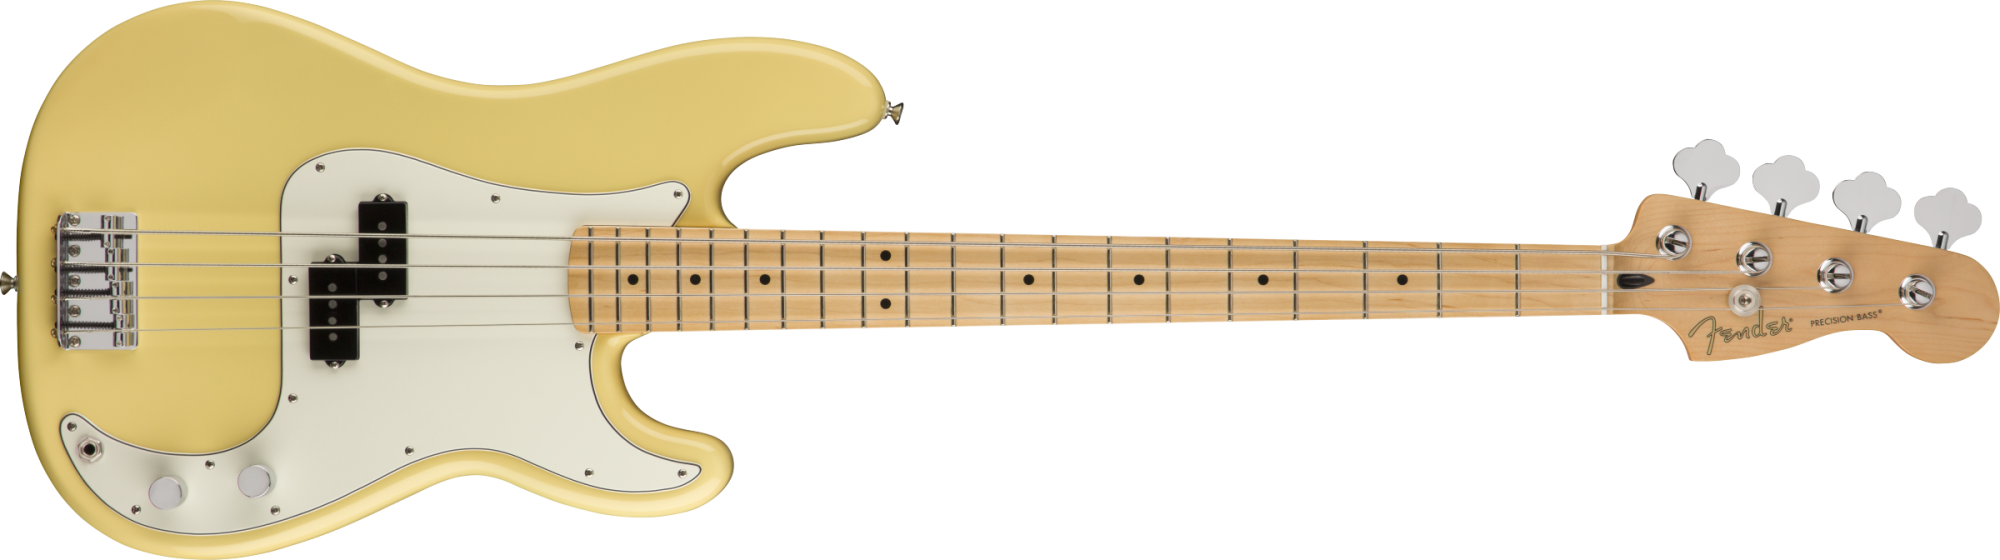 Fender Player Precision Bass with Maple neck Buttercream finish